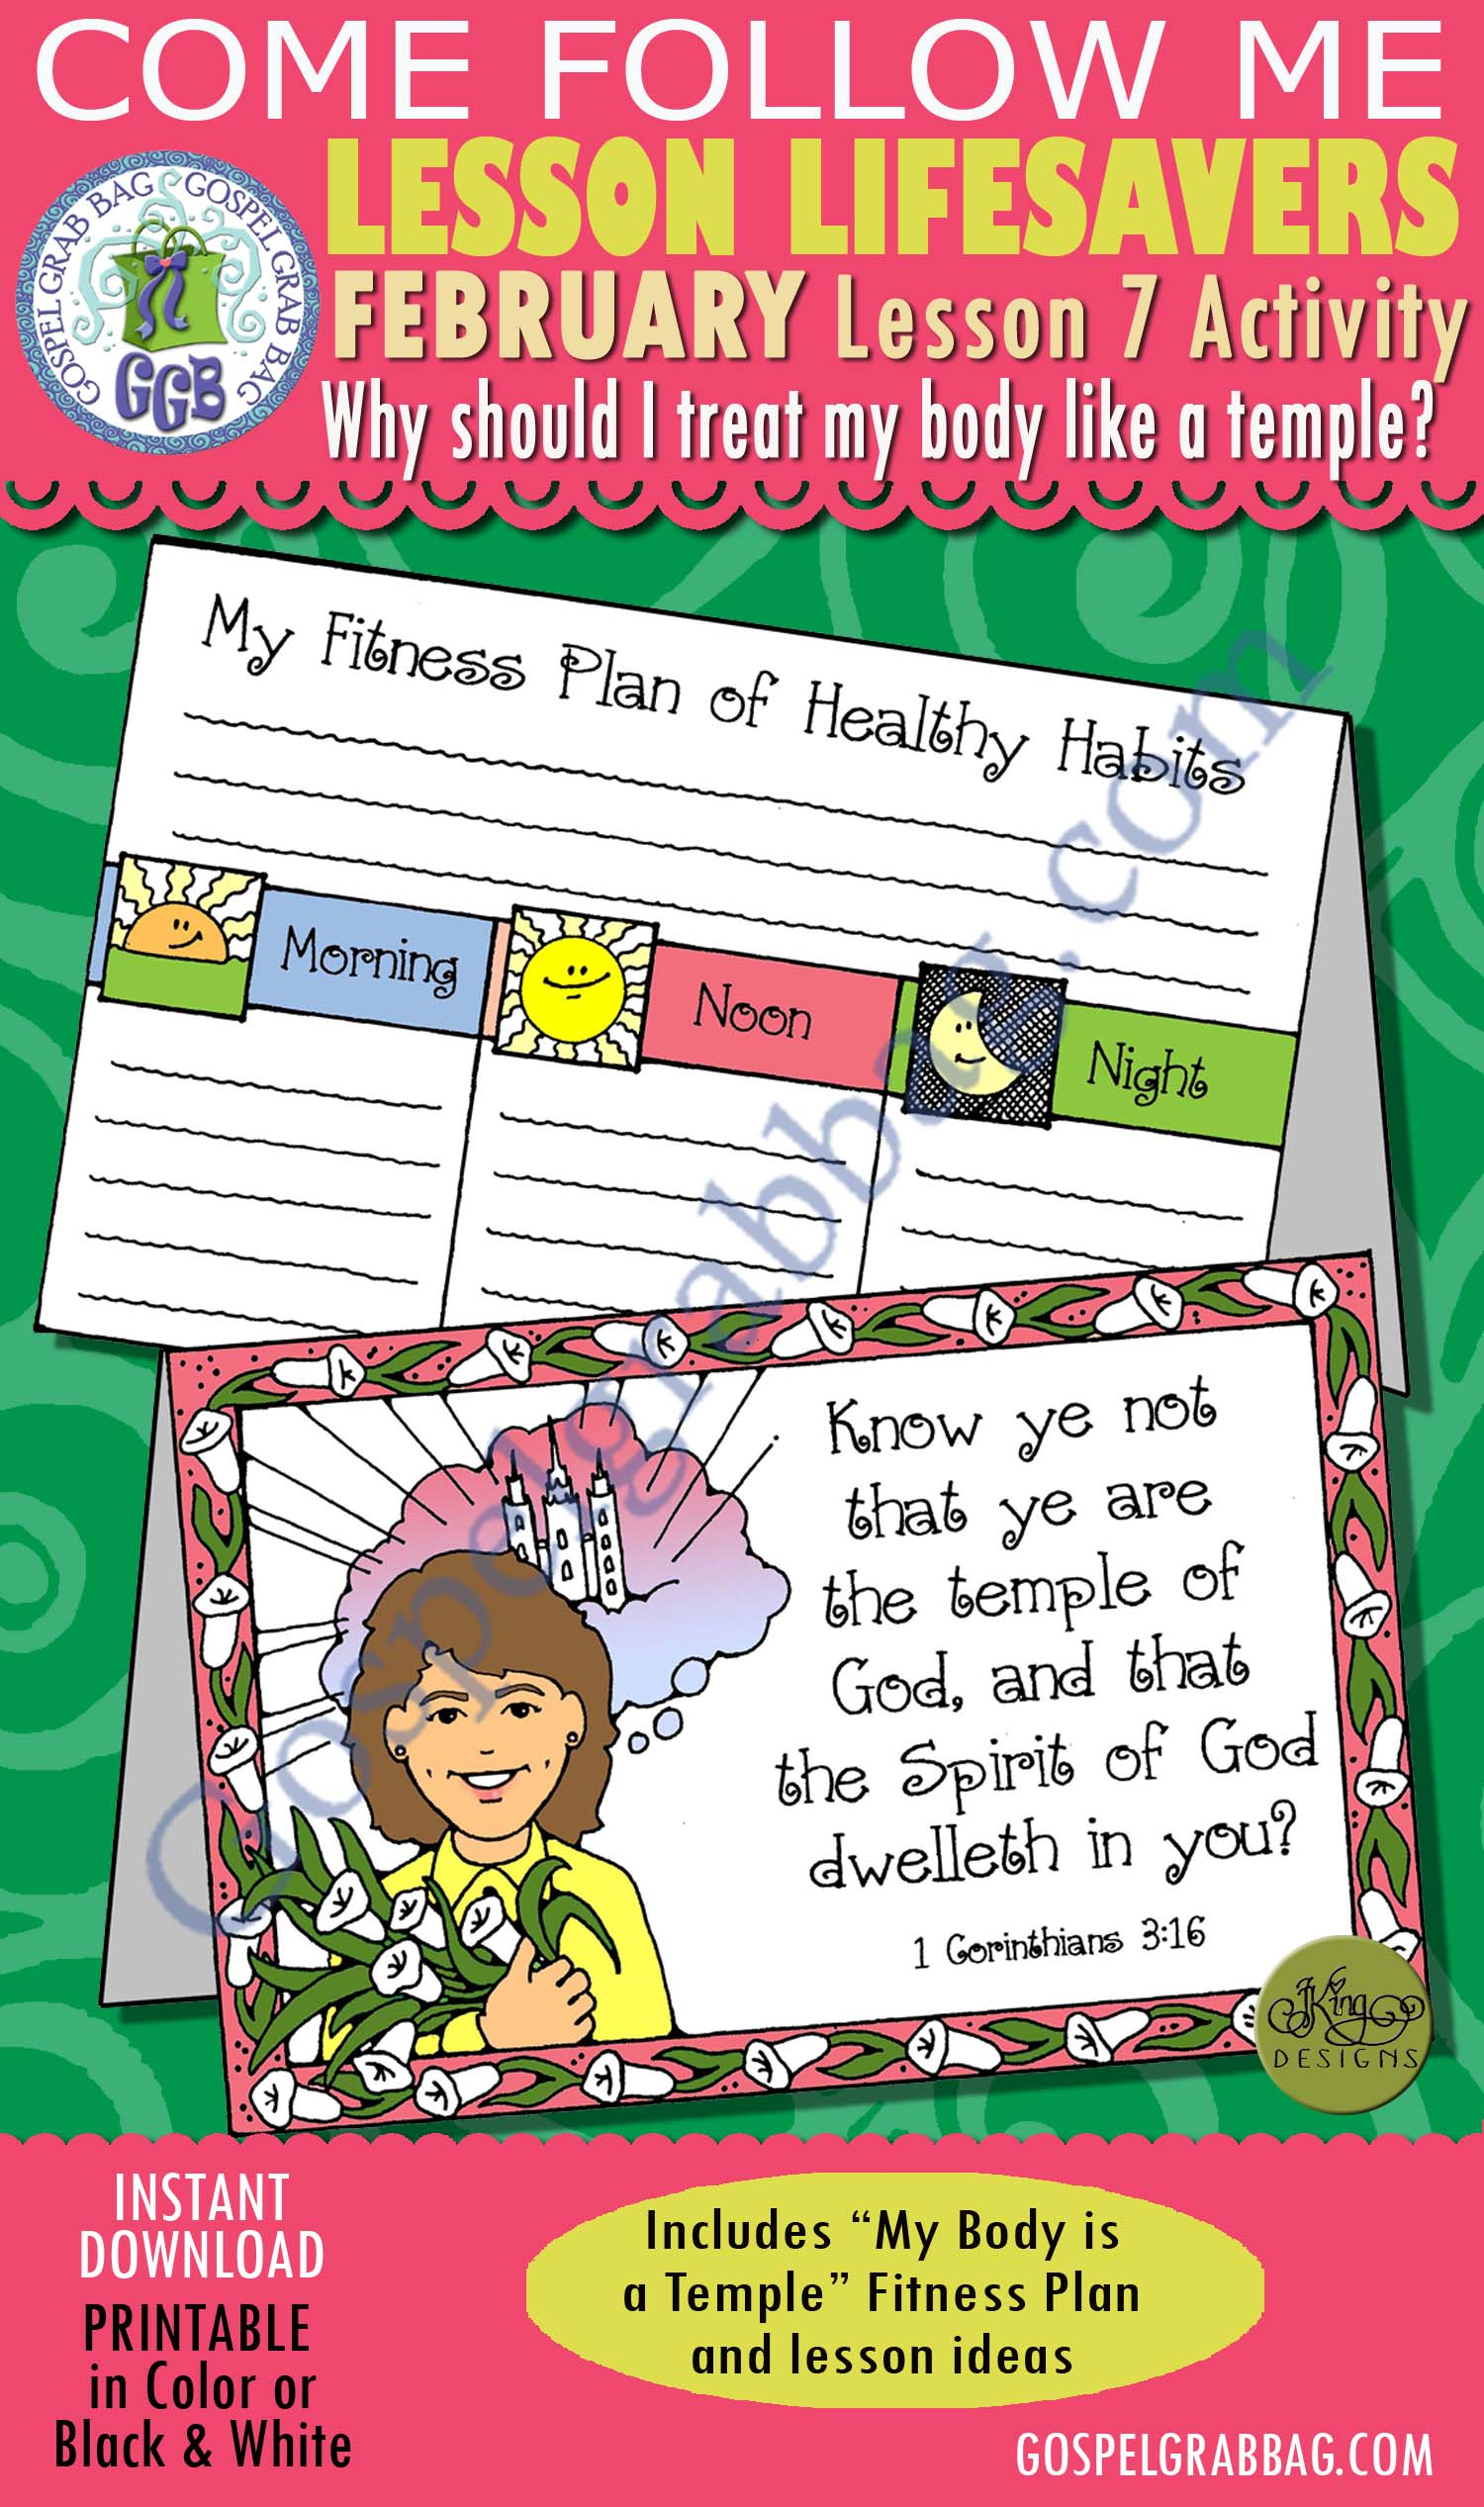 "$1.75 February Lesson 7 Come Follow Me ""Why should I treat my body like a temple?"" ACTIVITY: My Body is a Temple - Fitness Plan tent-card, Young Women handout, GospelGrabBag.com, teen family home evening"